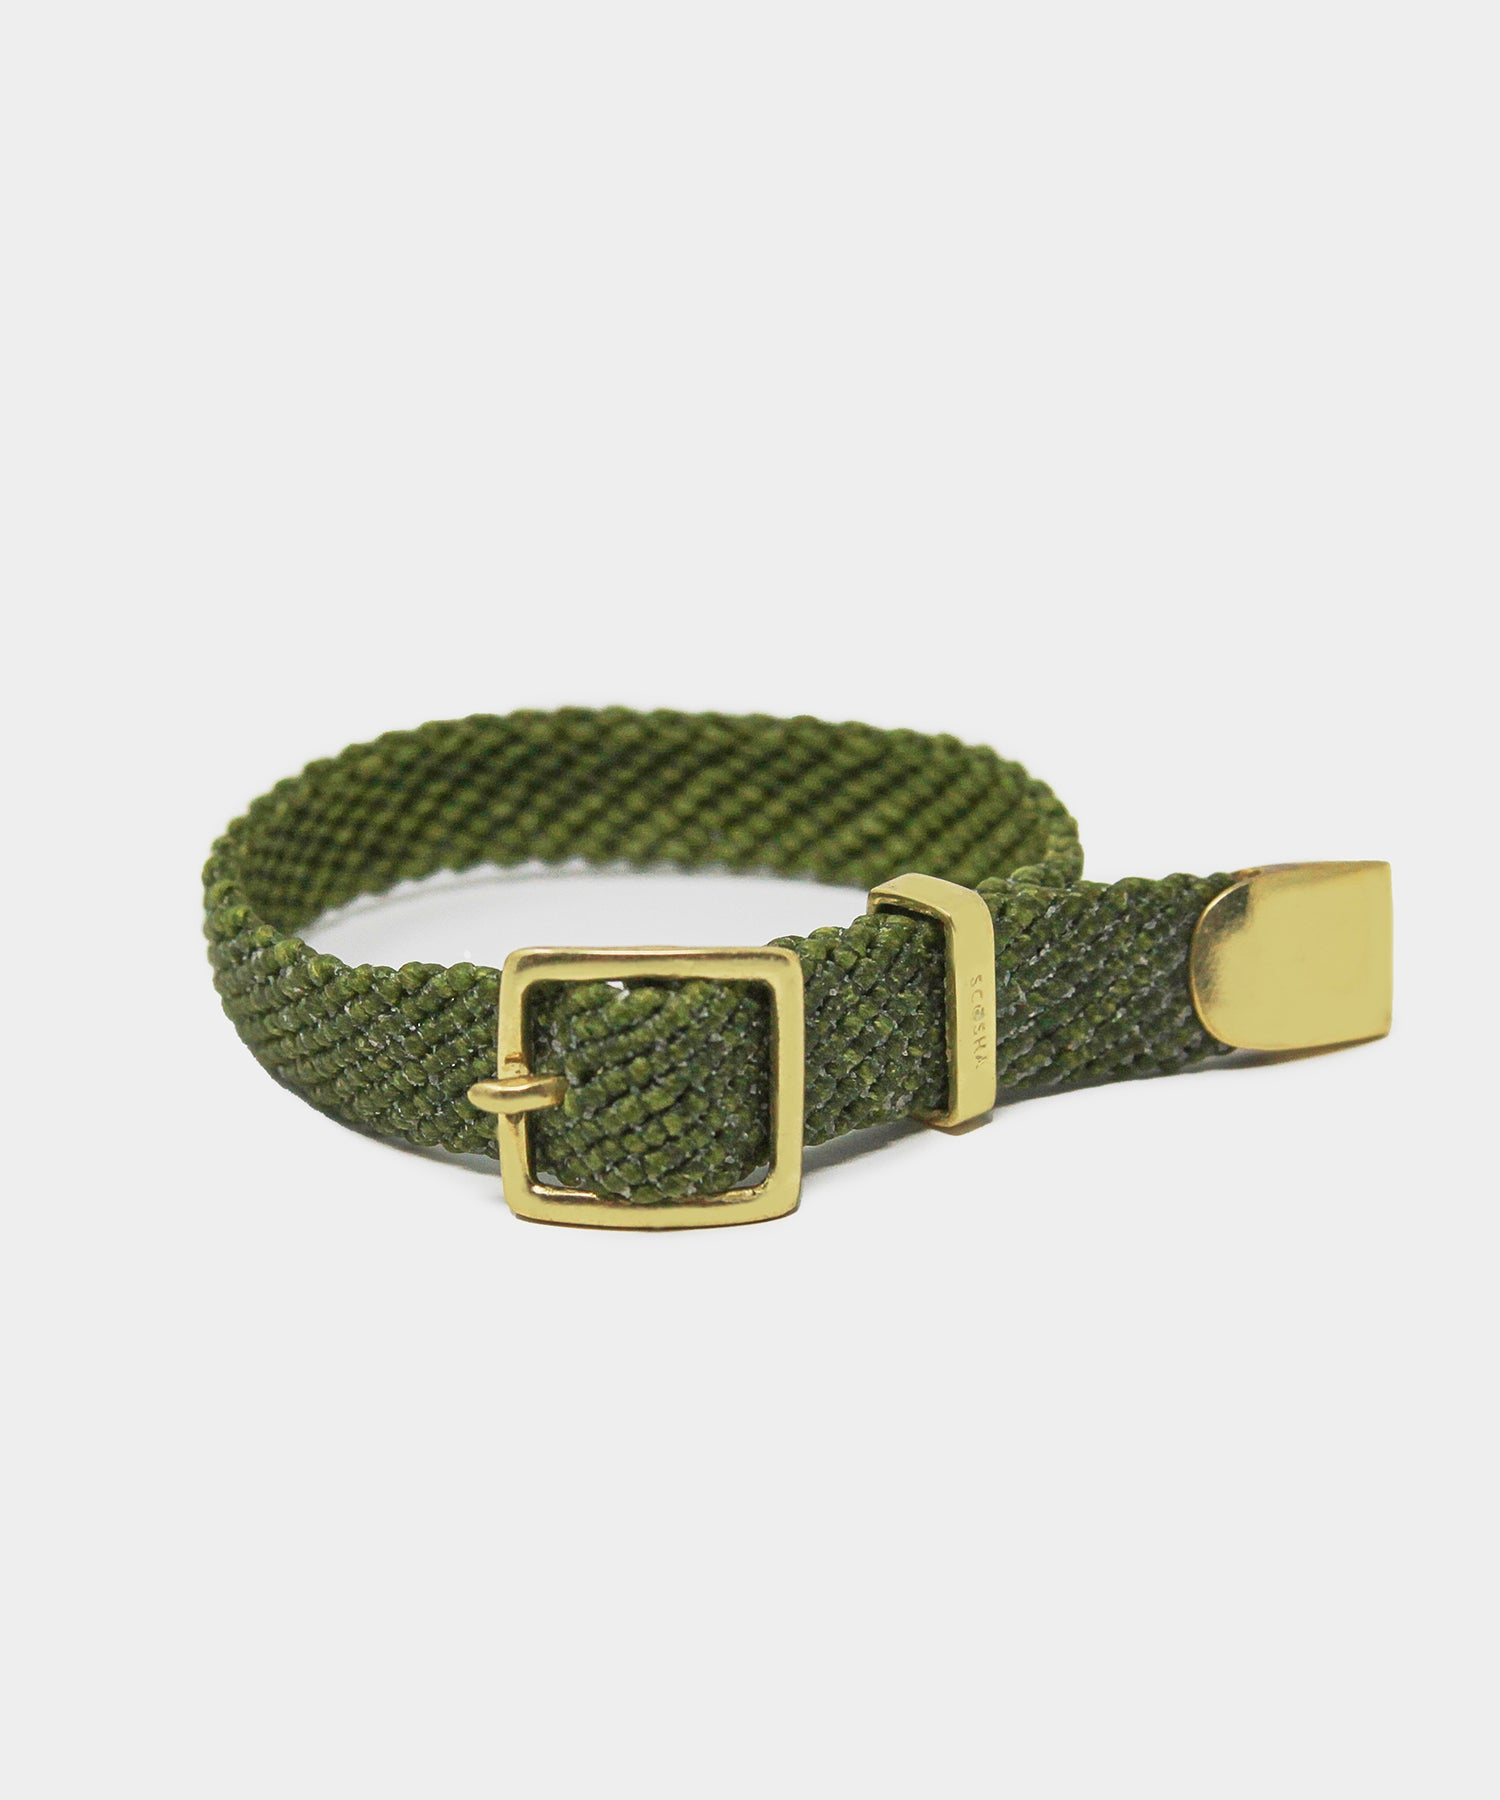 Scosha Macrame Belt Bracelet in Olive With Gold Clasp